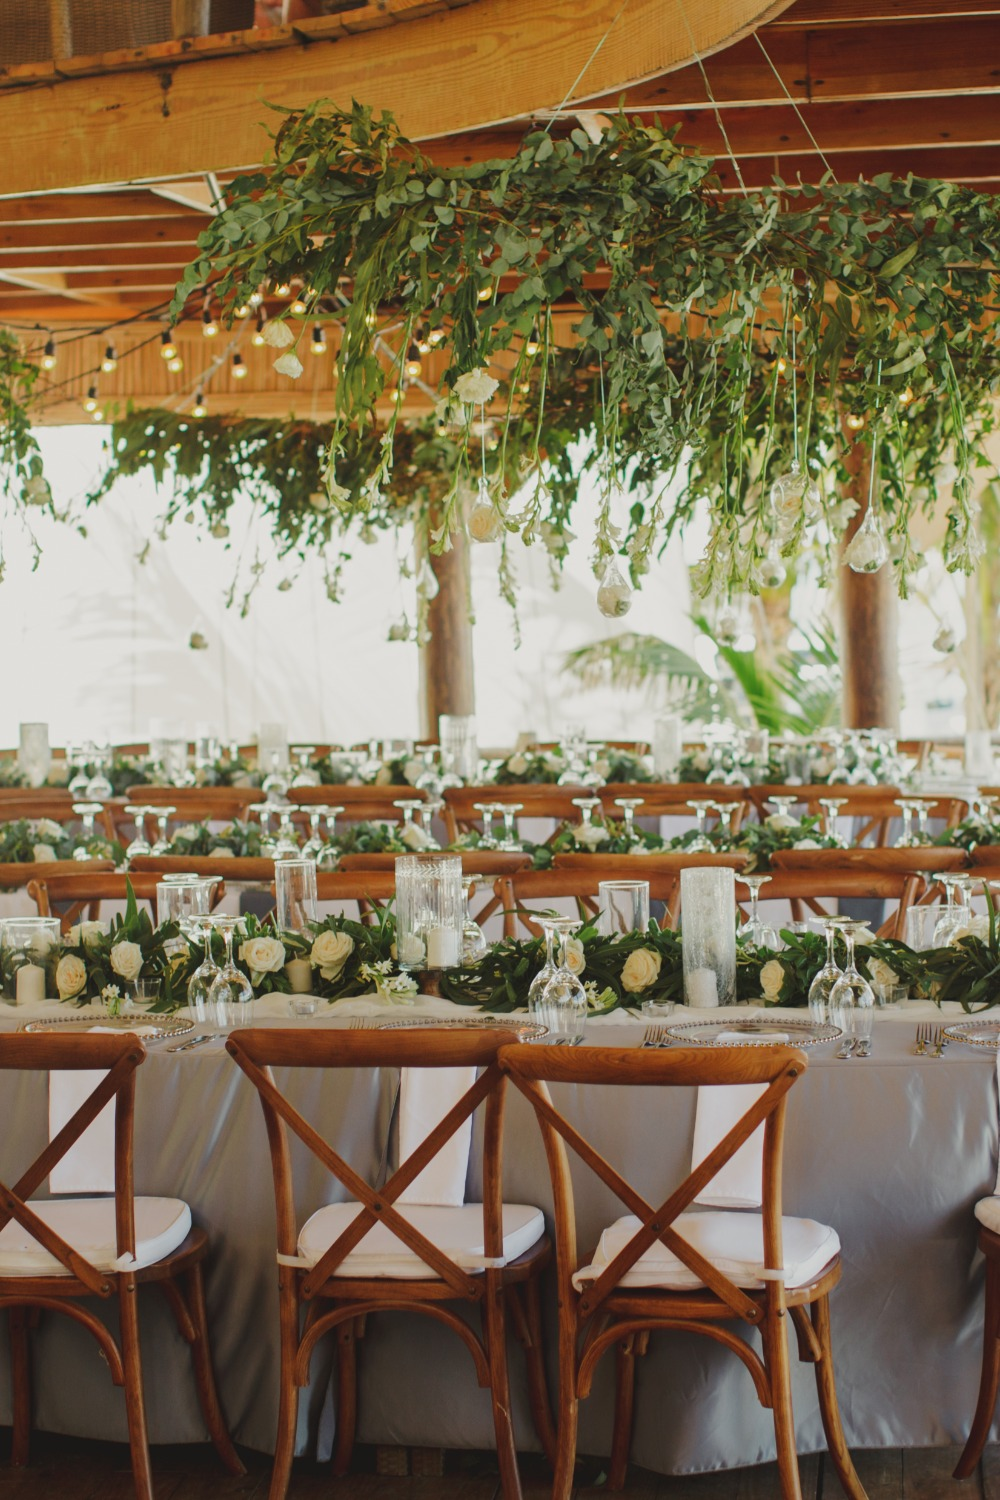 glamorous table setting with hanging flowers